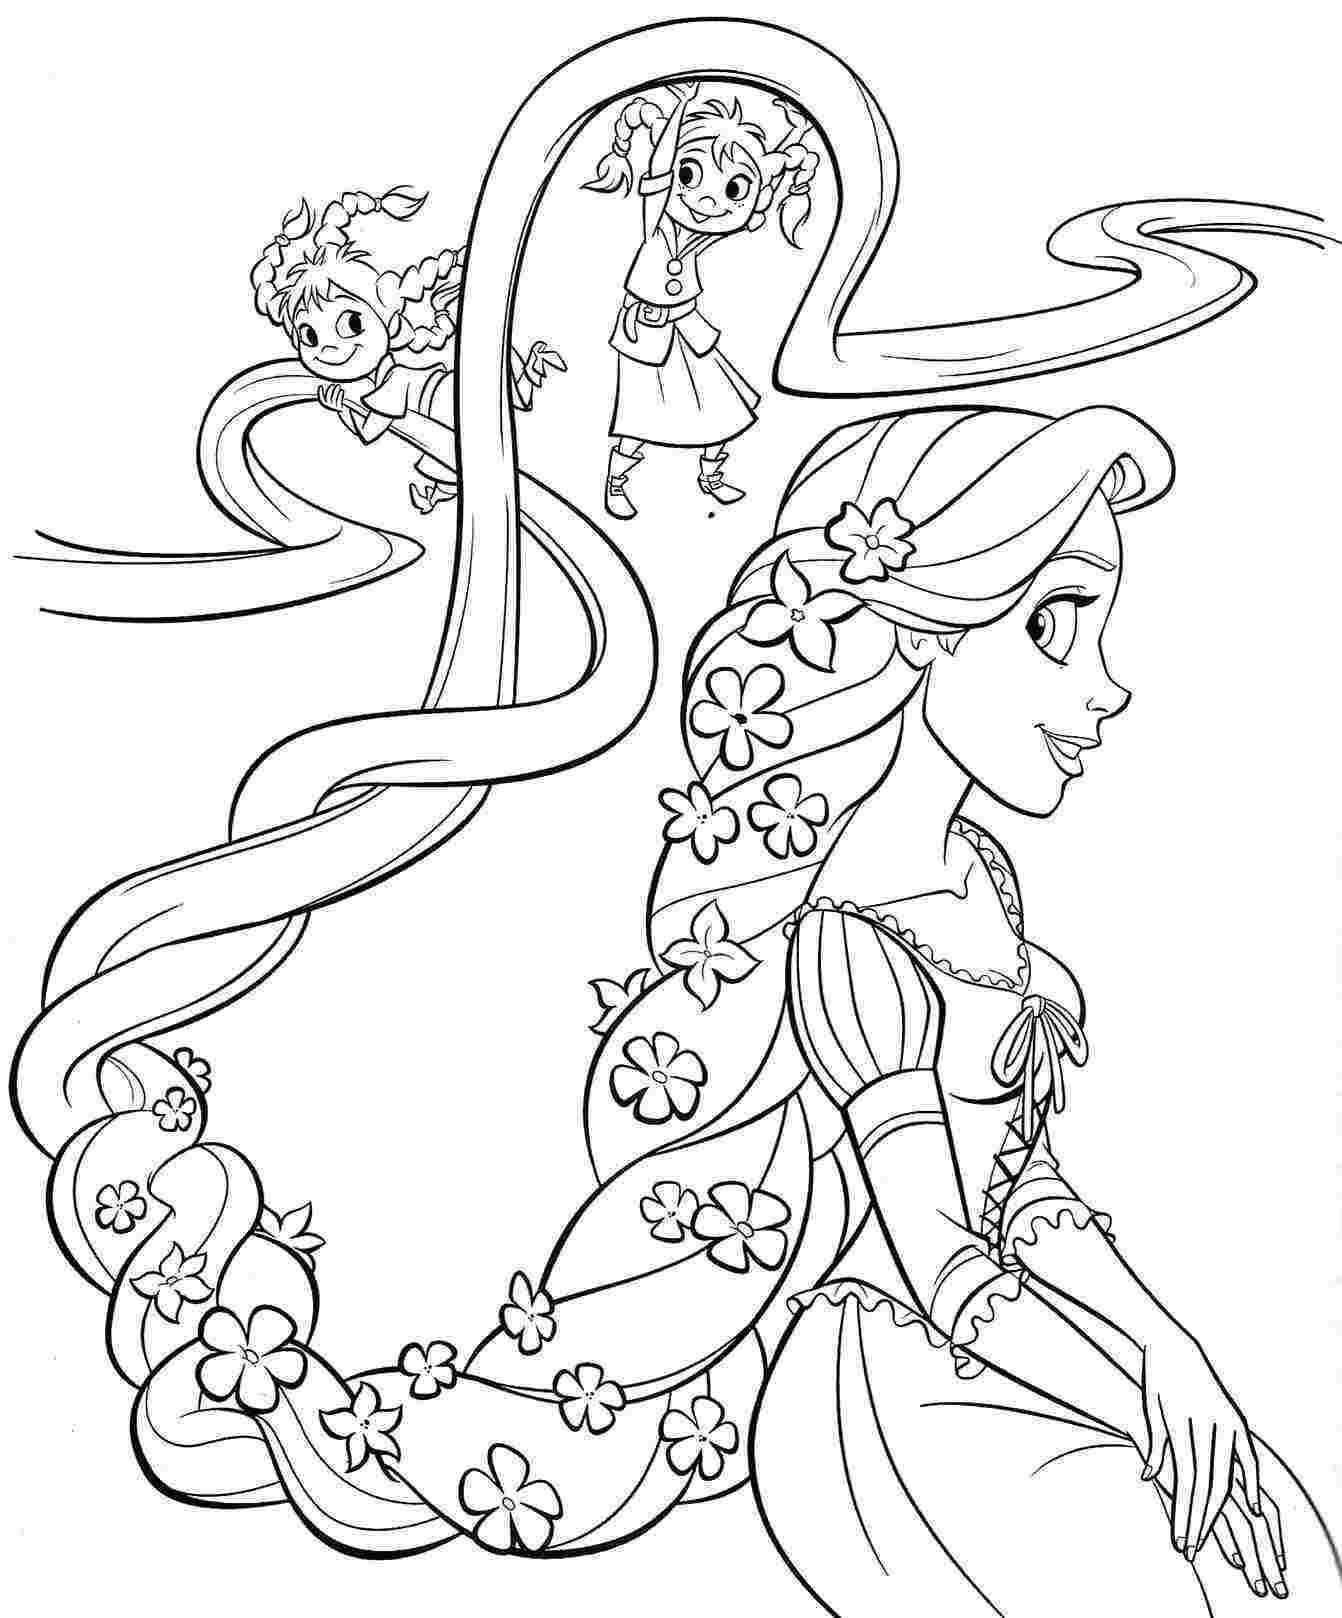 Pin Di Kid Movie Coloring Pages